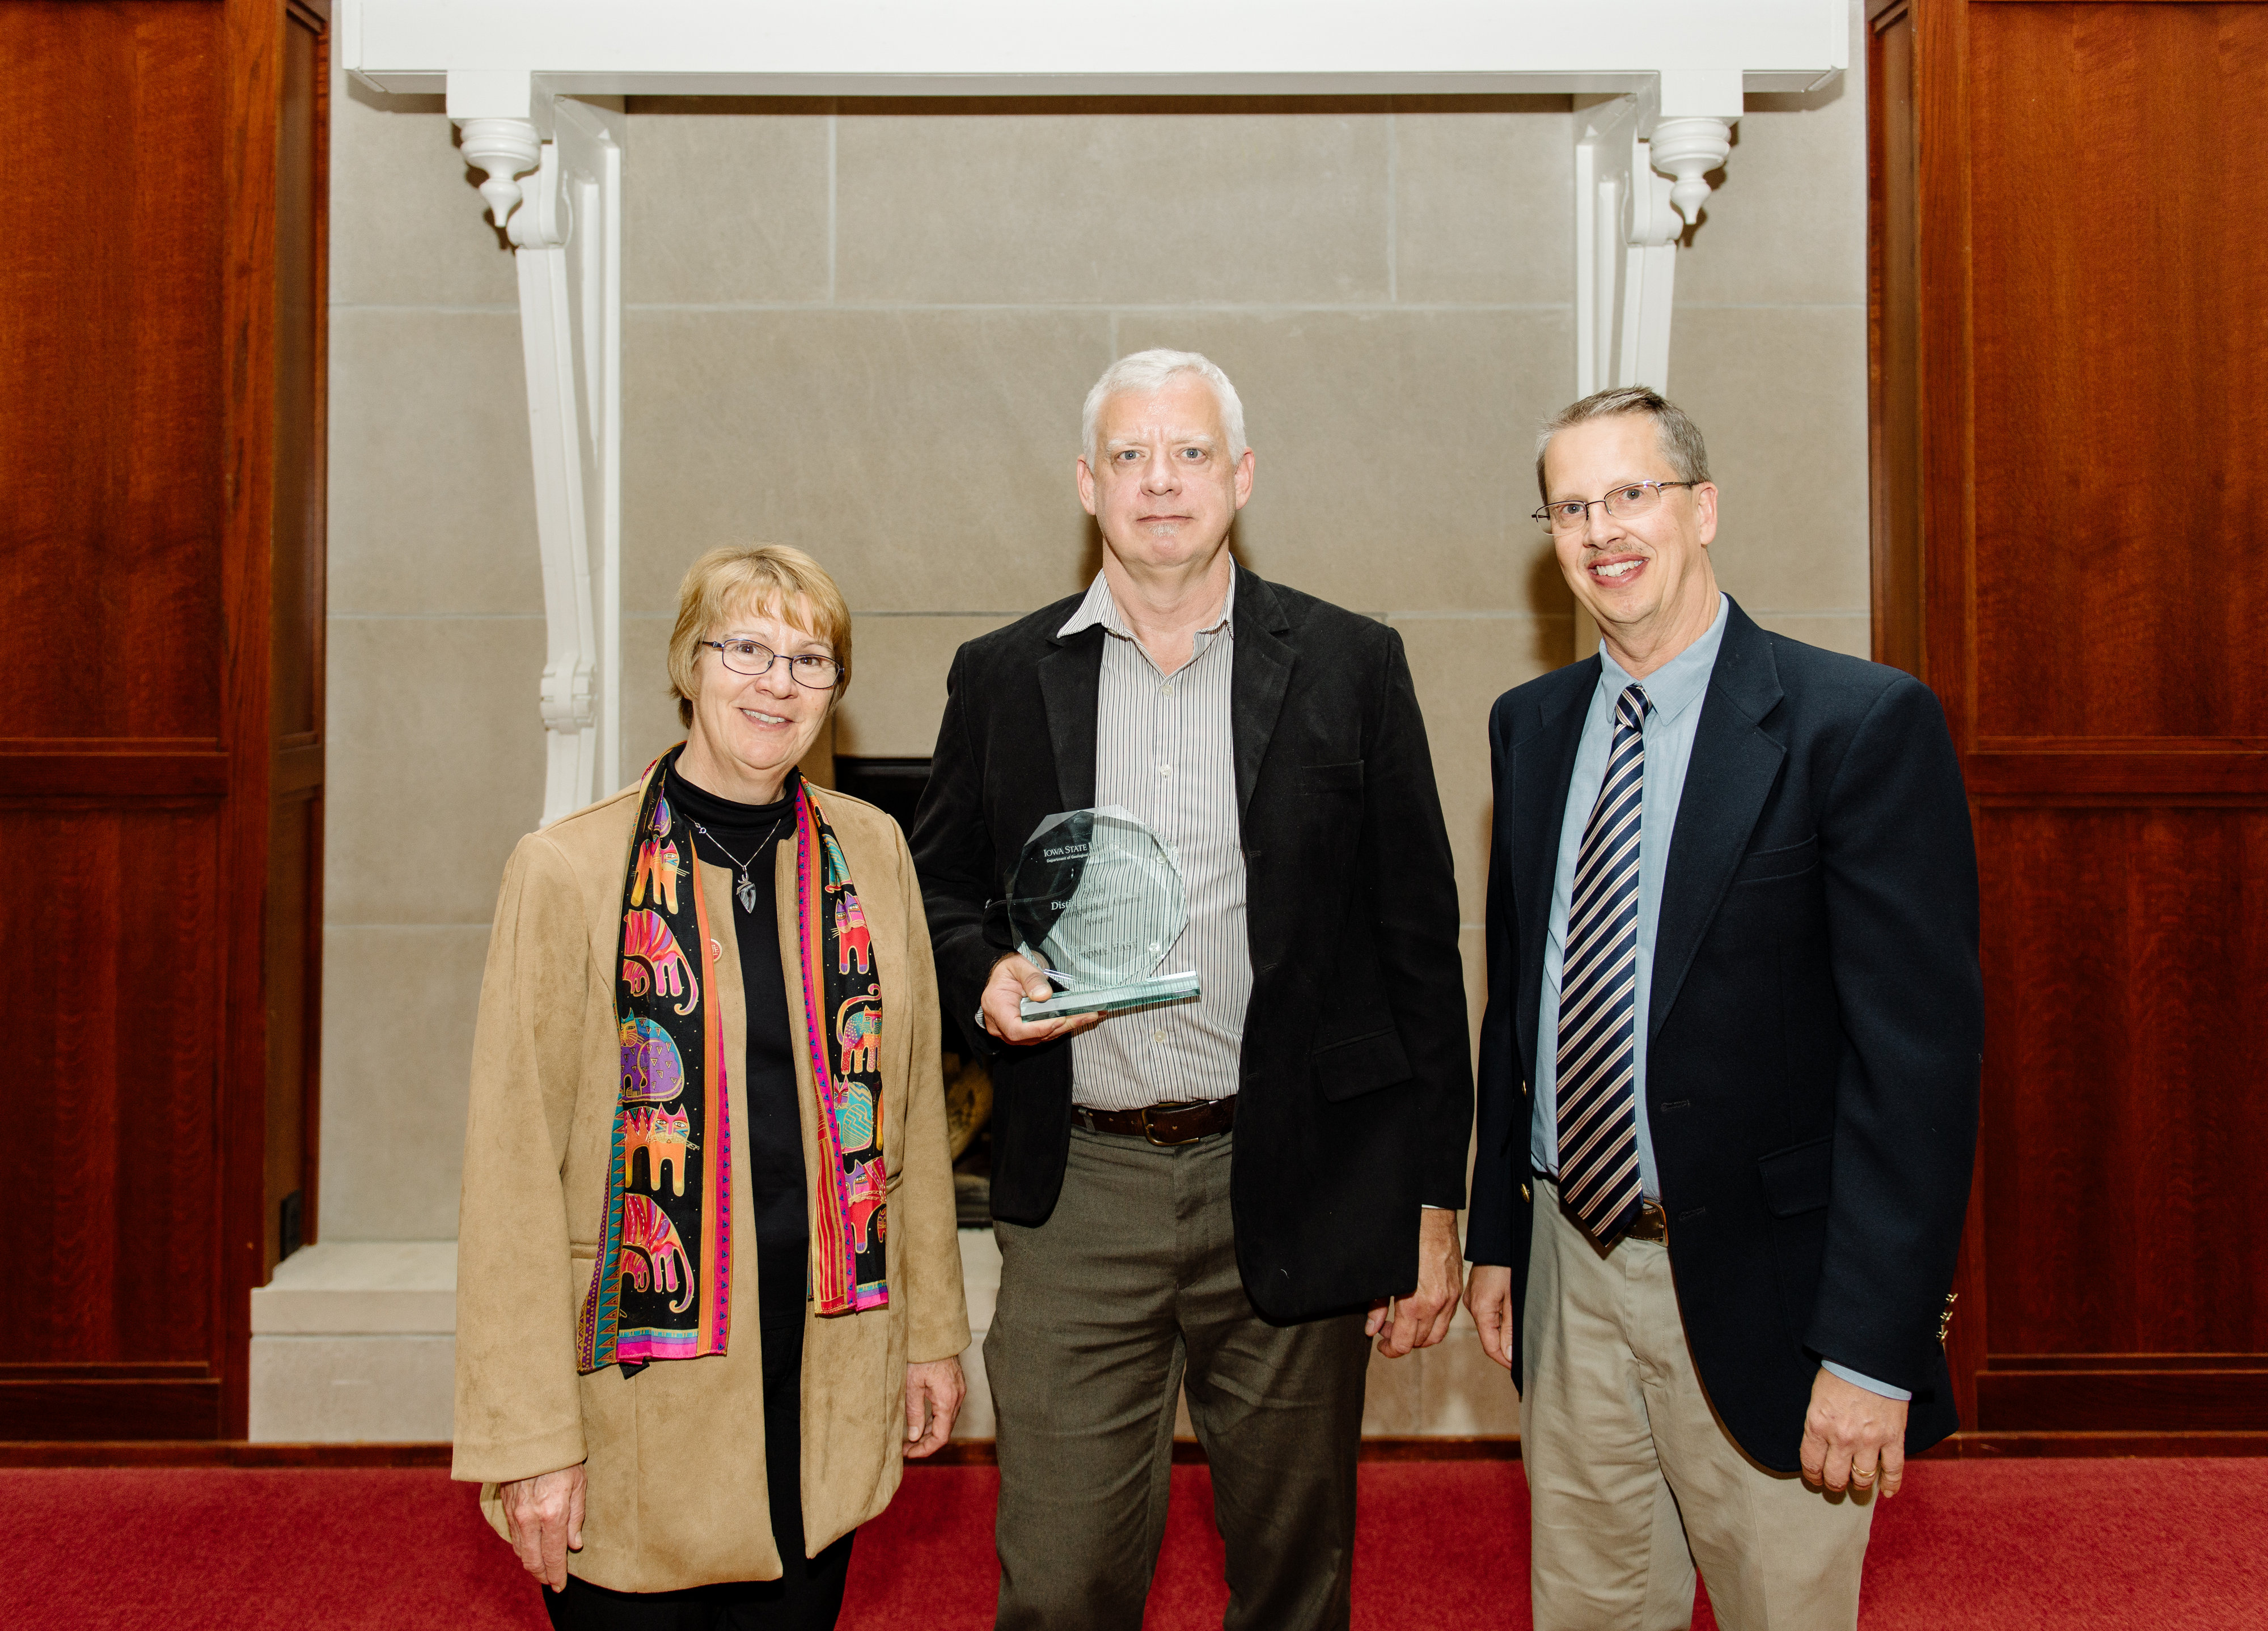 Jerome Fast (center) stands with Dean Schmittmann (left) and Bill Gallus (right) after receiving the GEAT Distinguished Alumni Award